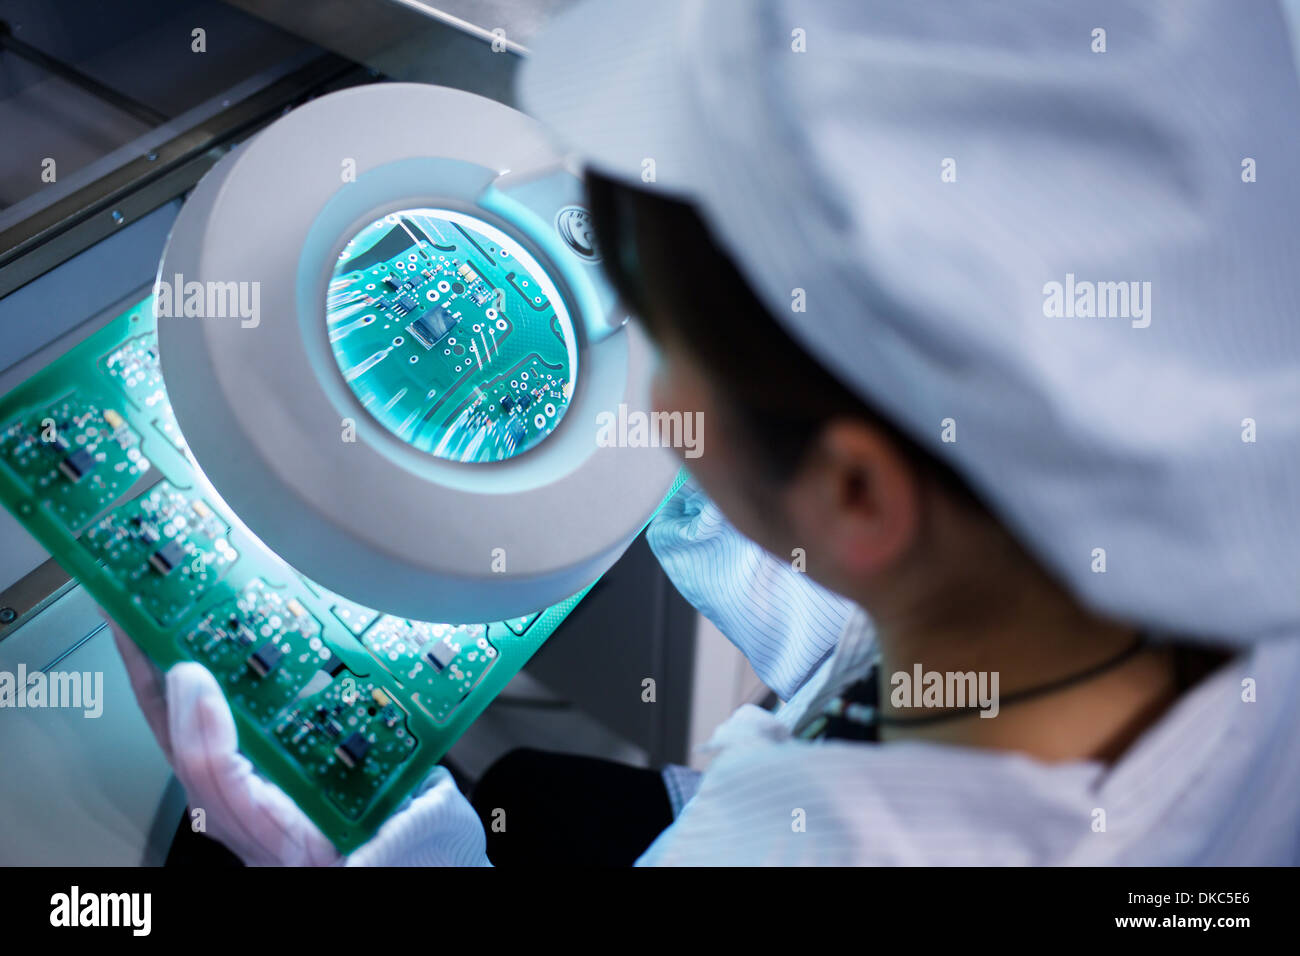 Worker at small parts manufacturing factory in China looking through magnifier at microchips - Stock Image